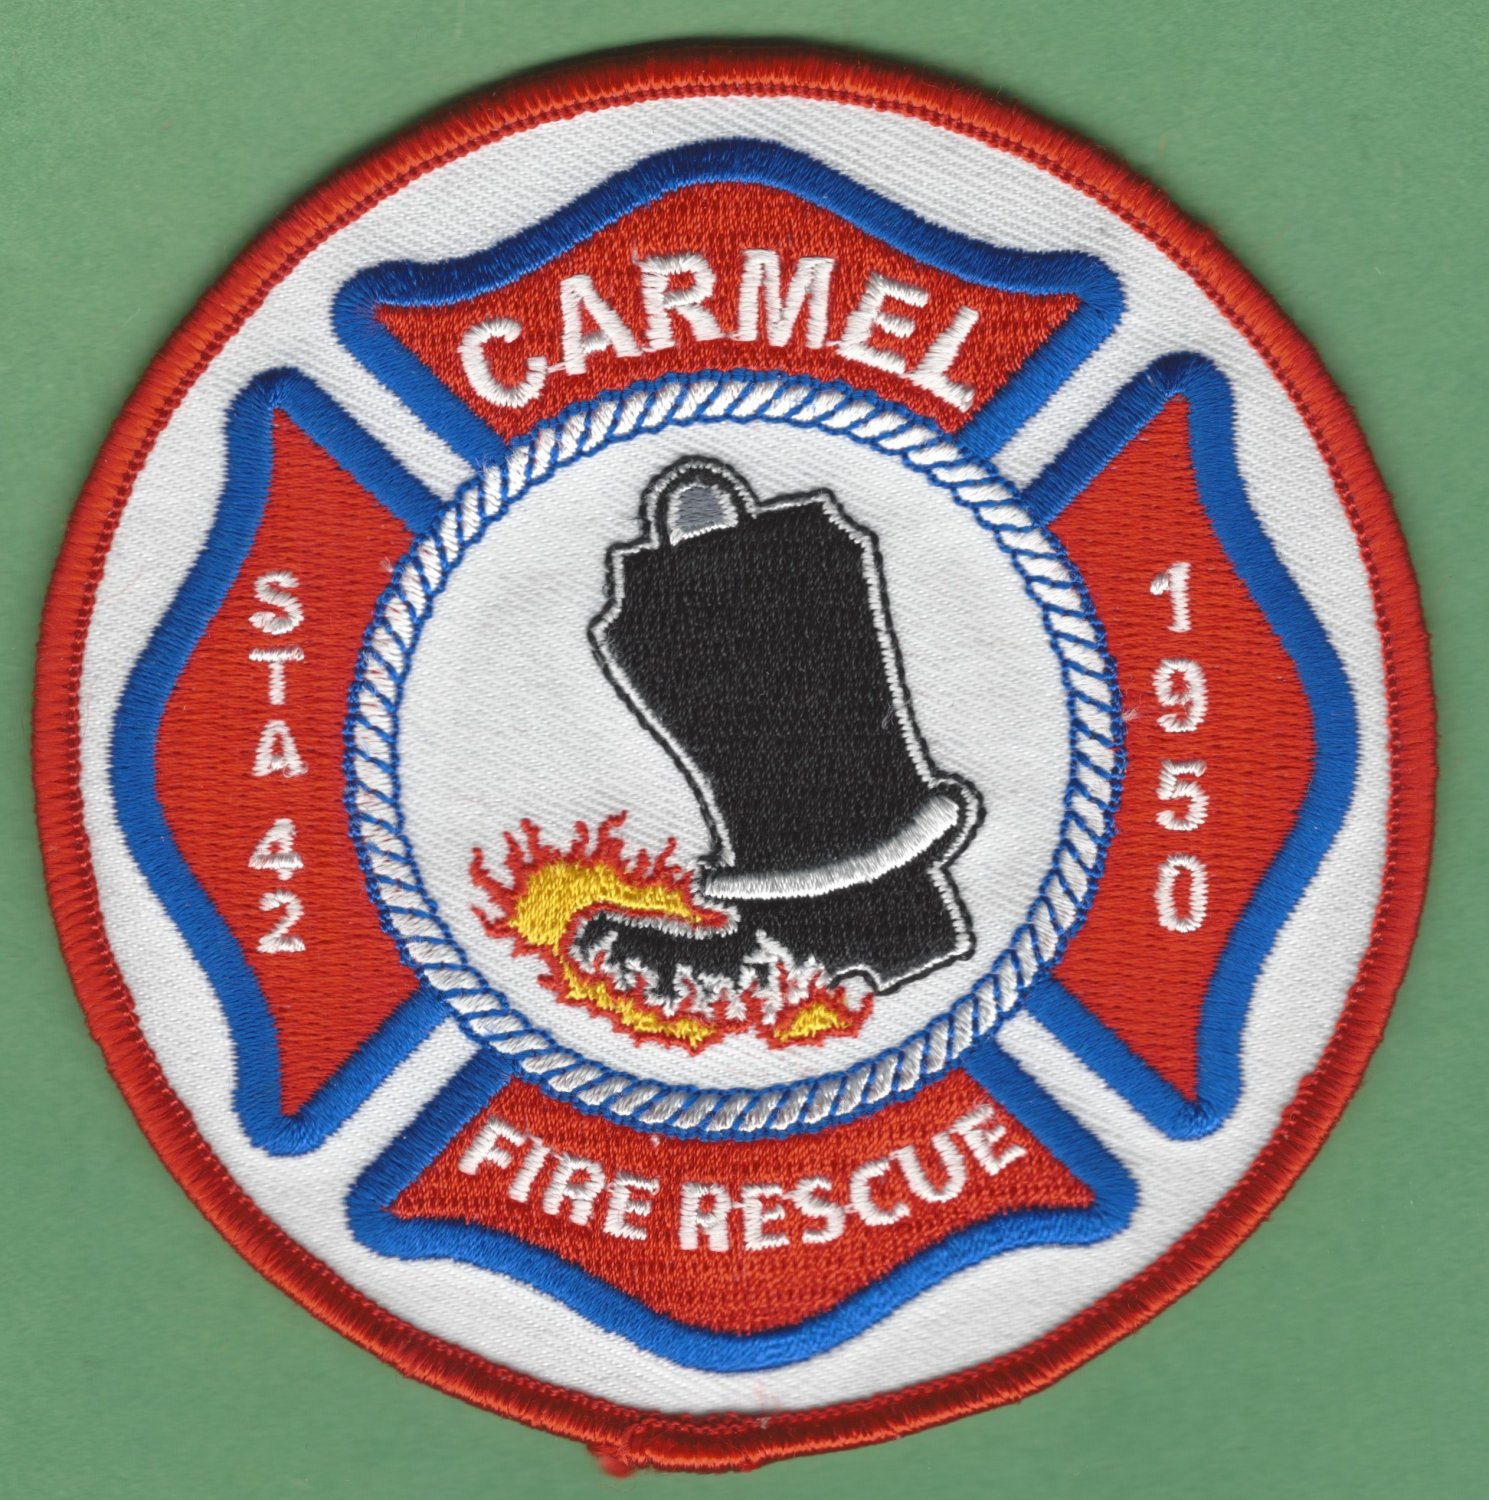 CARMEL INDIANA FIRE RESCUE PATCH